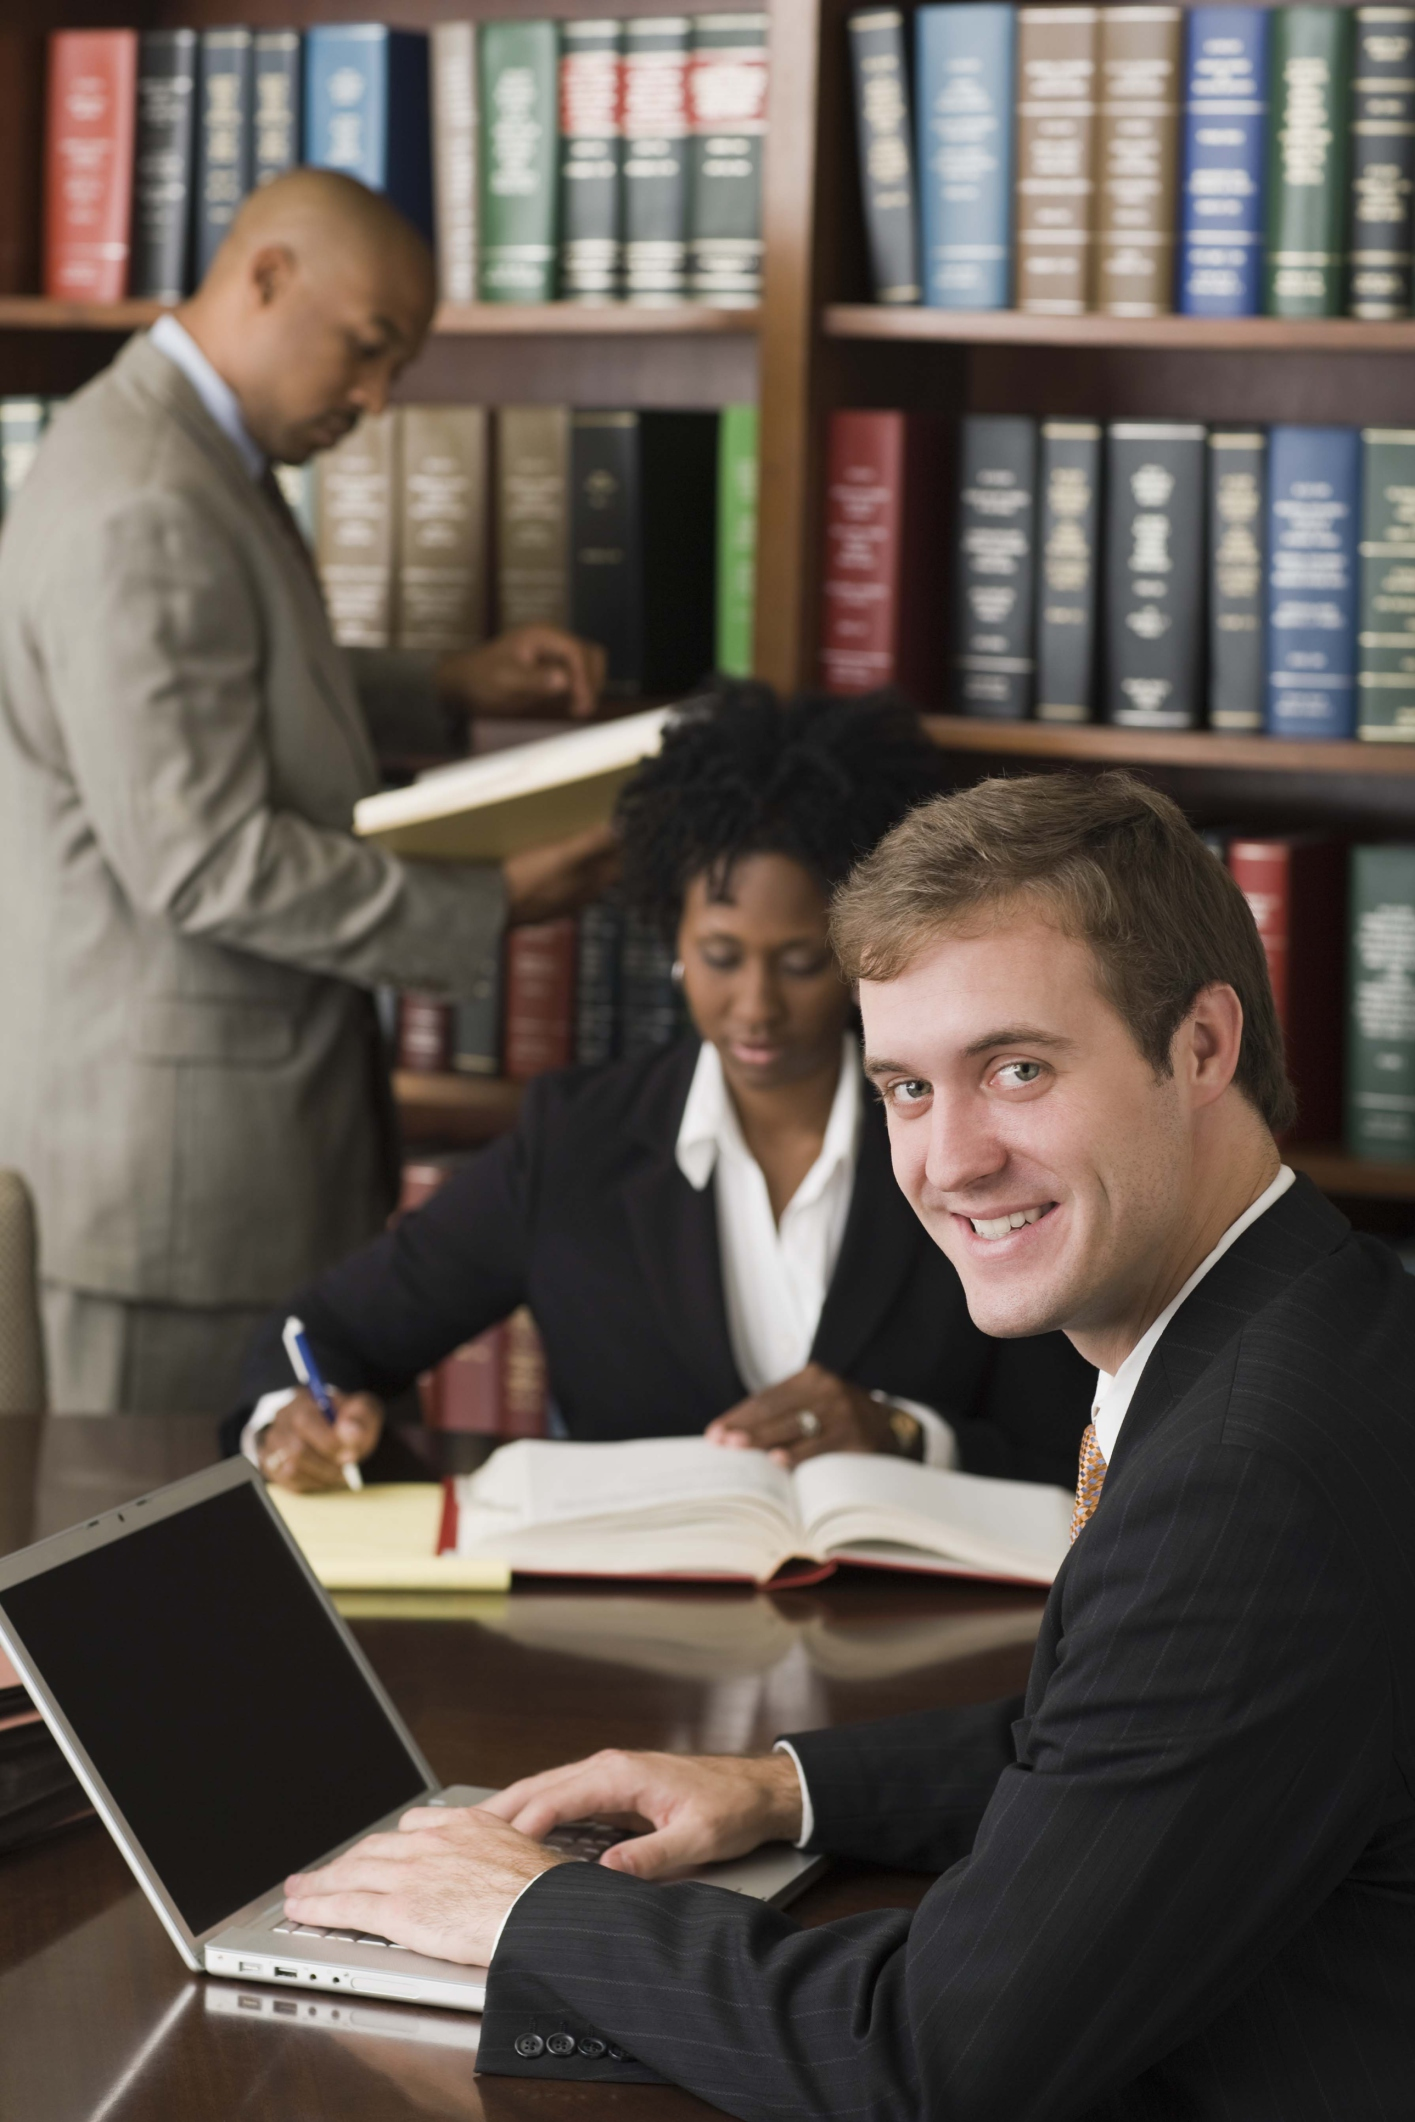 Lawyers Researching in Library||||